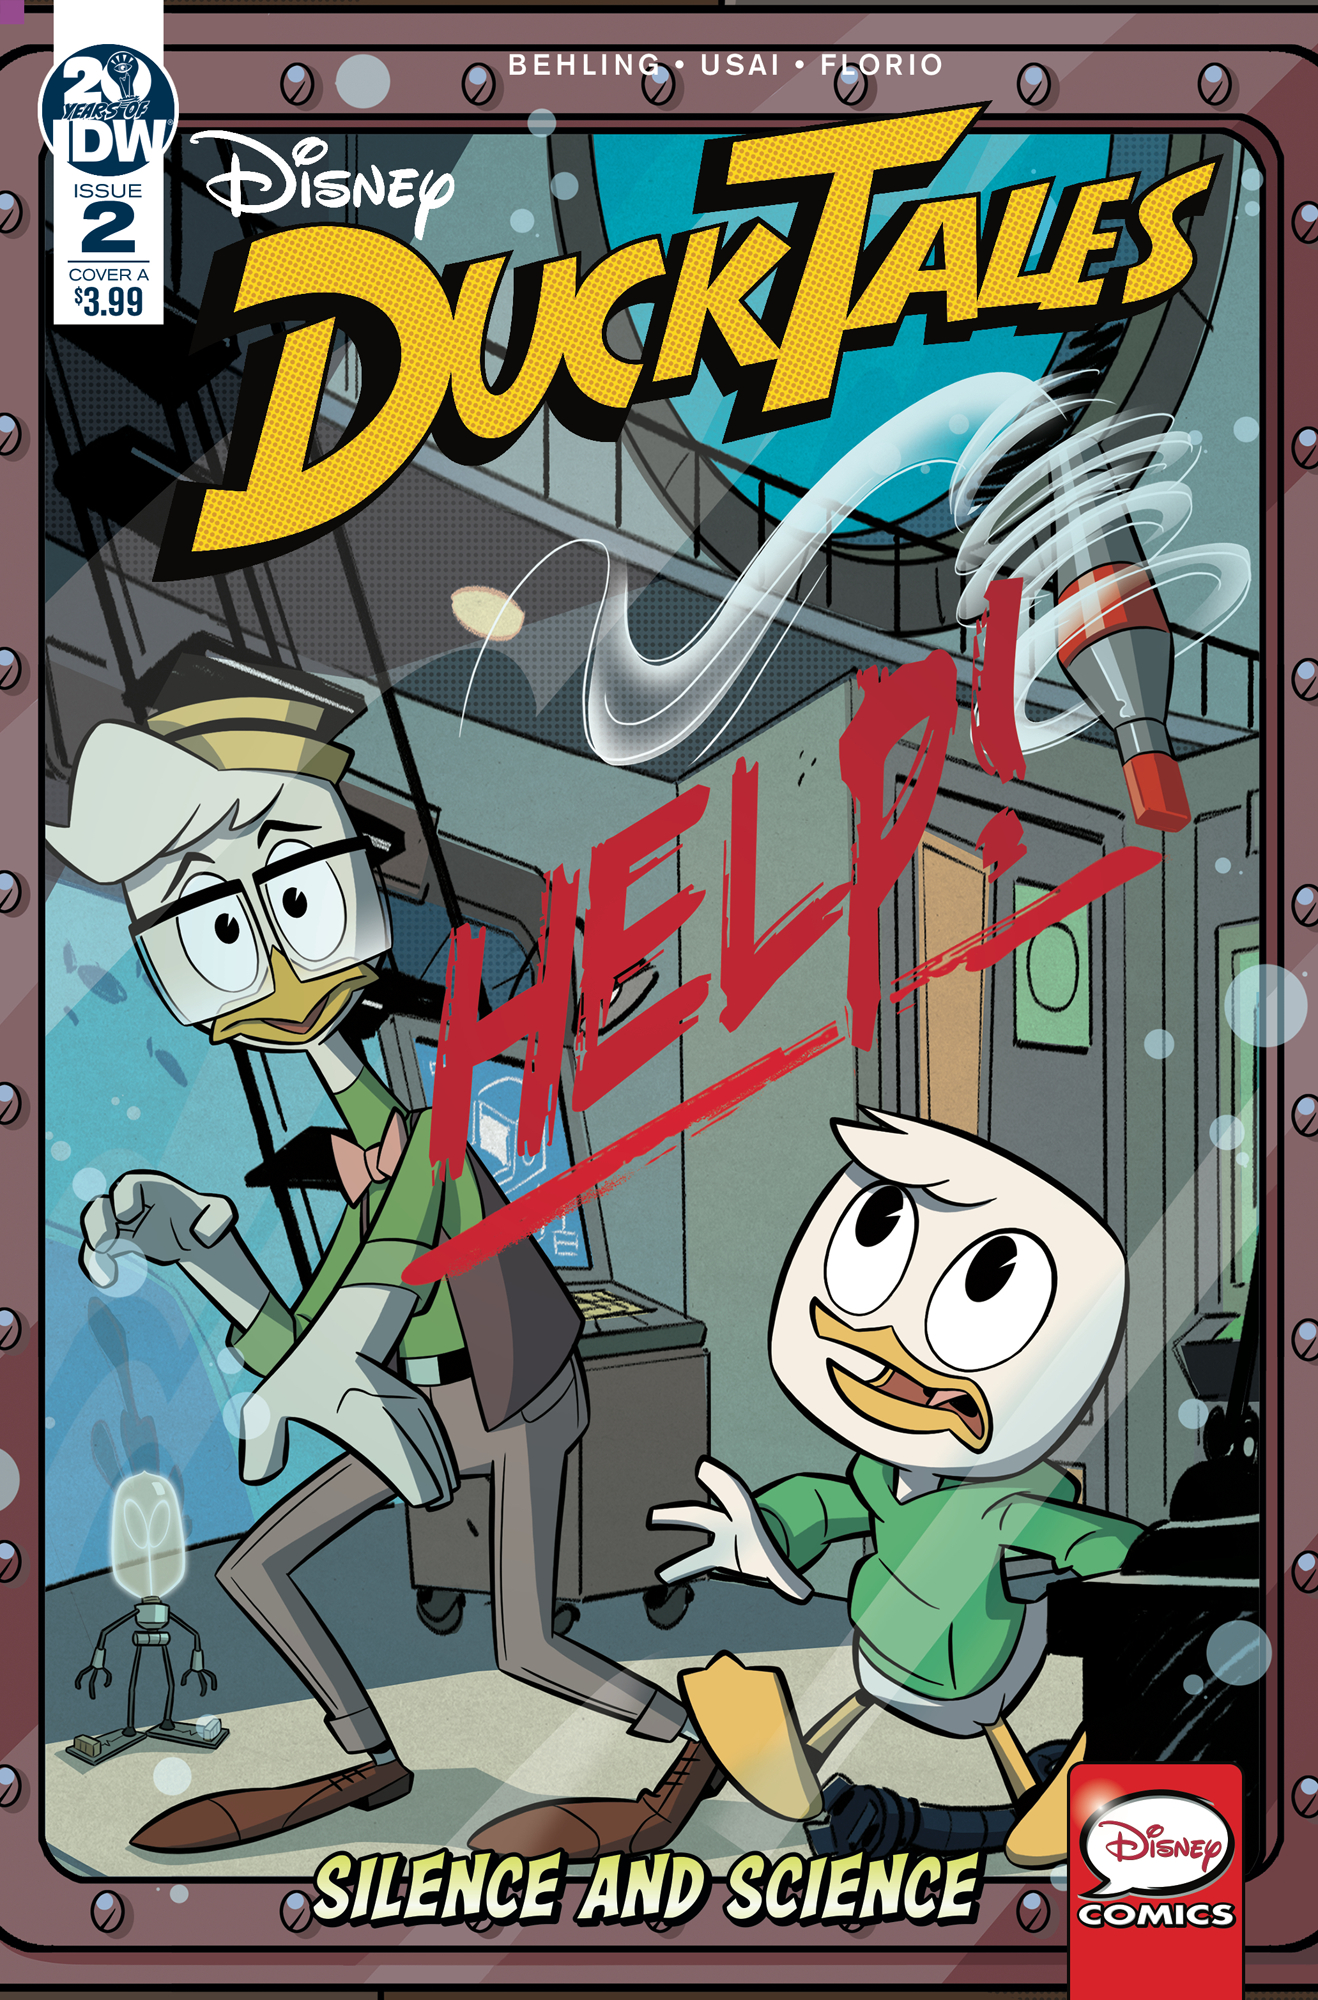 DUCKTALES SILENCE & SCIENCE #2 (OF 3) CVR A GHIGLIONE